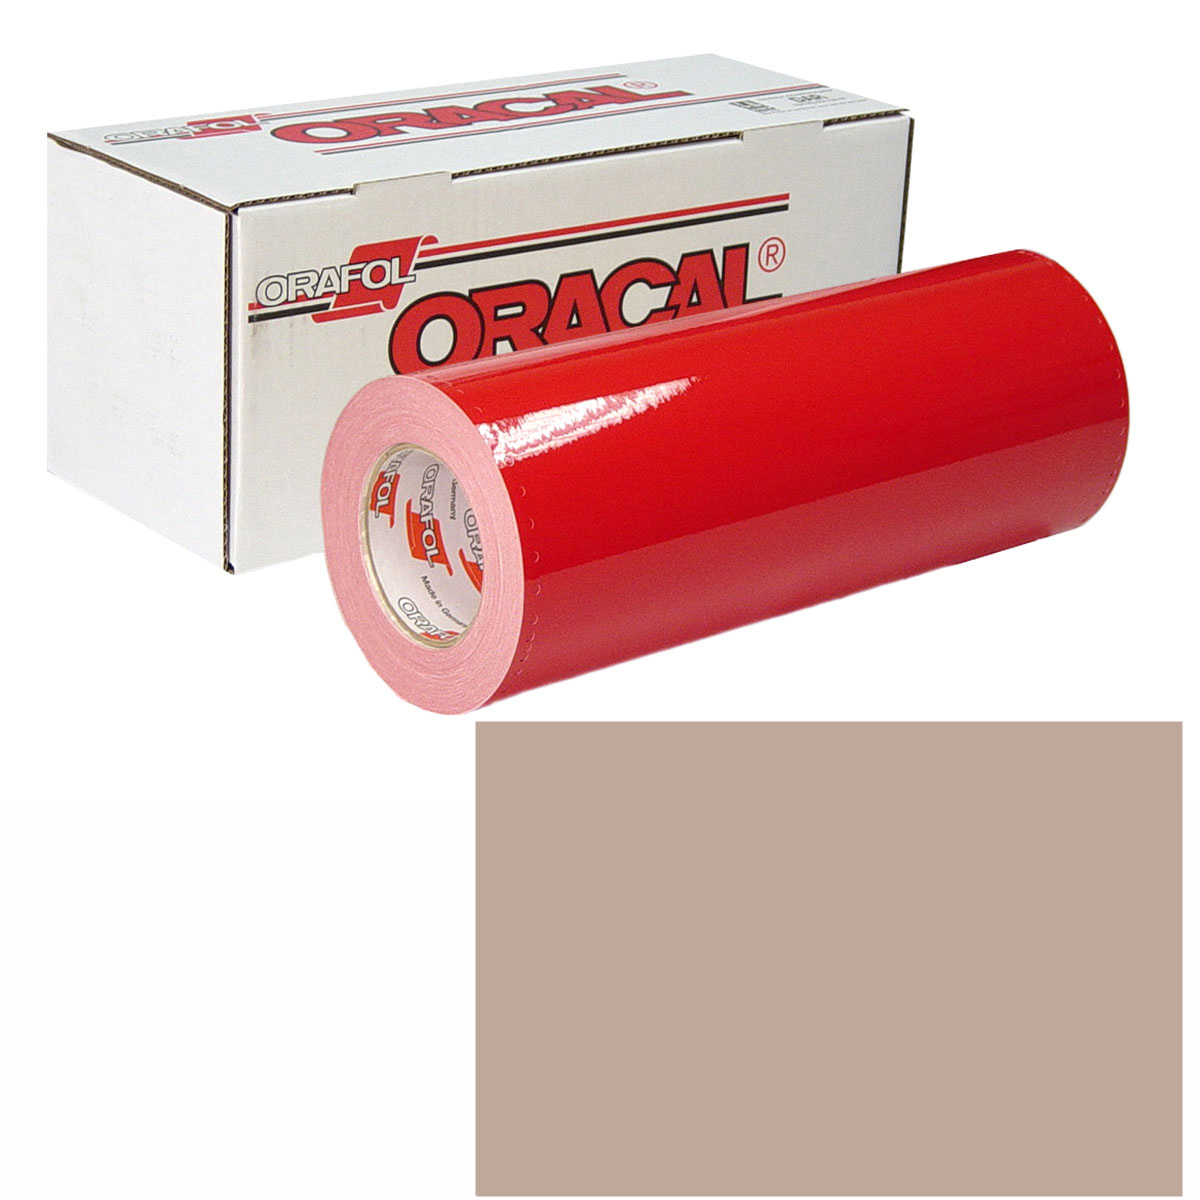 ORACAL 951M Unp 24in X 50yd 923 Light Brown